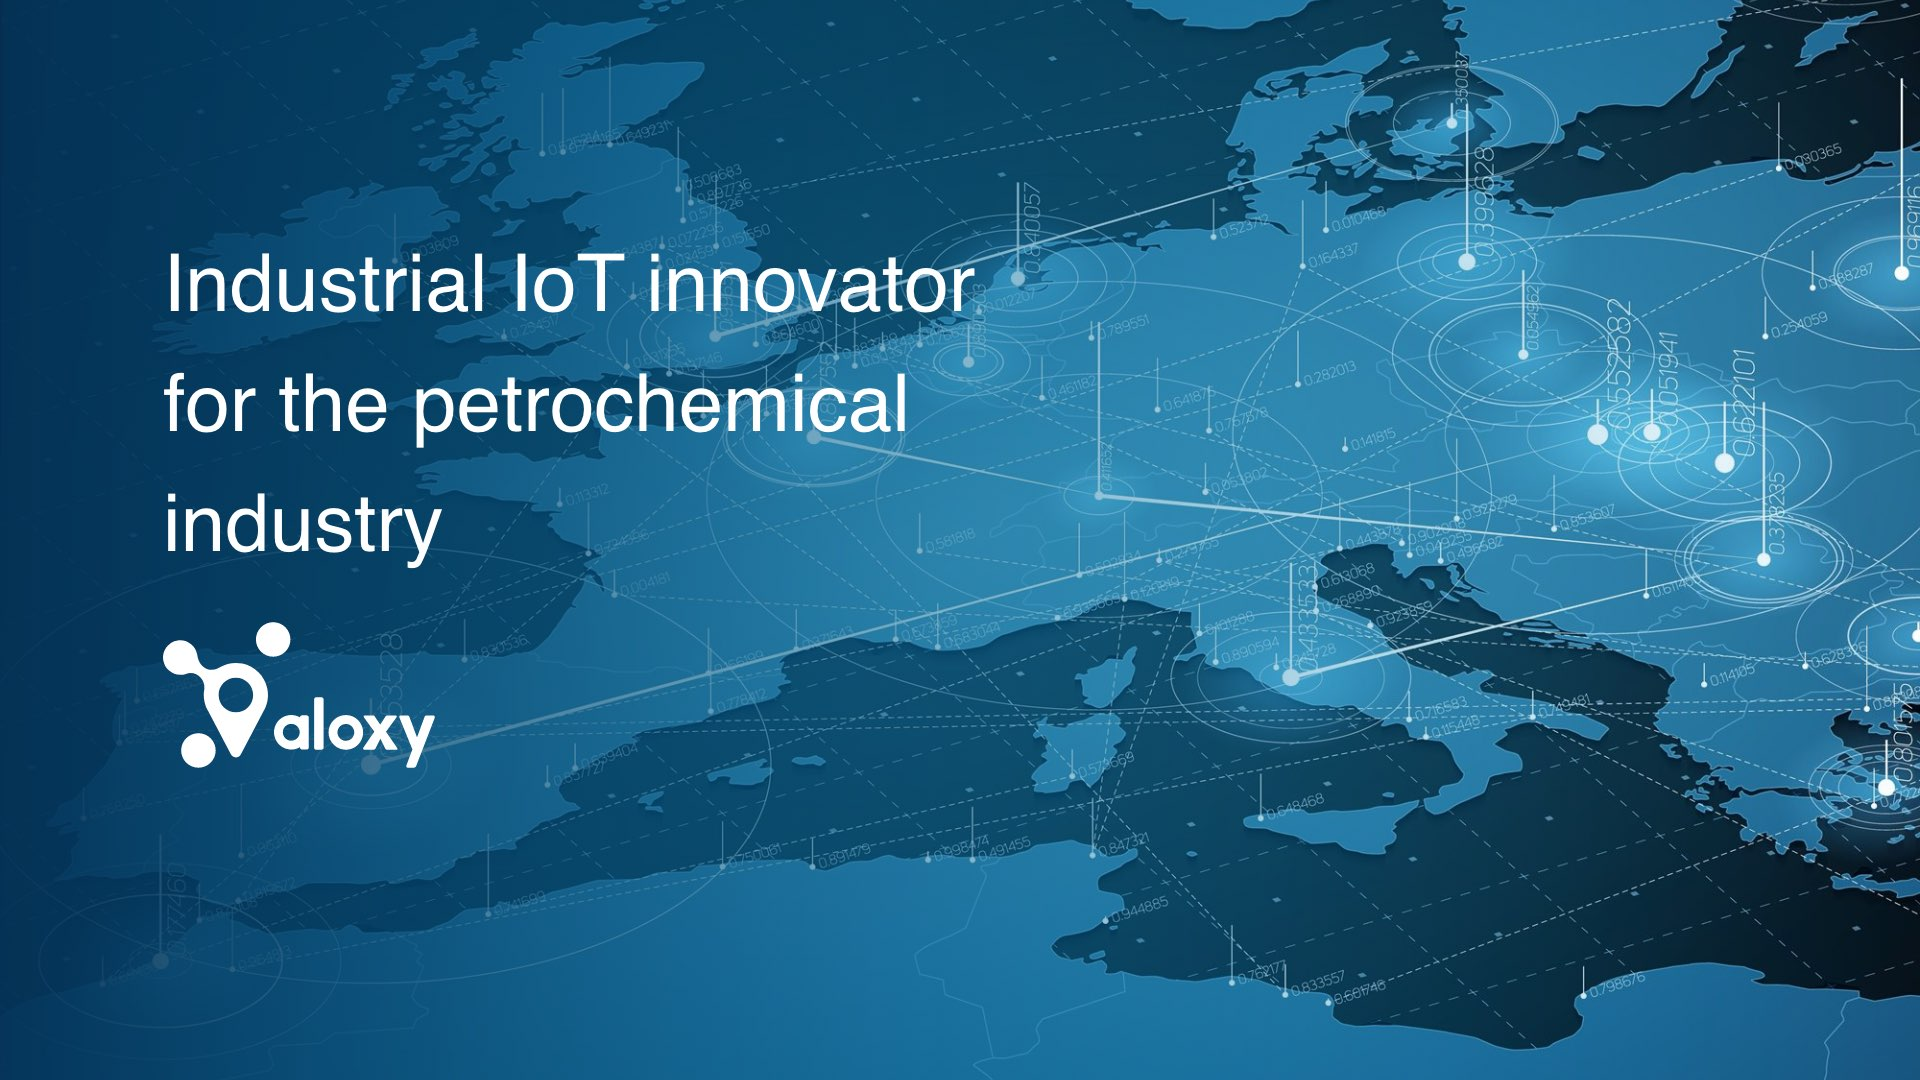 Aloxy.io - industrial IoT innovator for the petrochemical industry